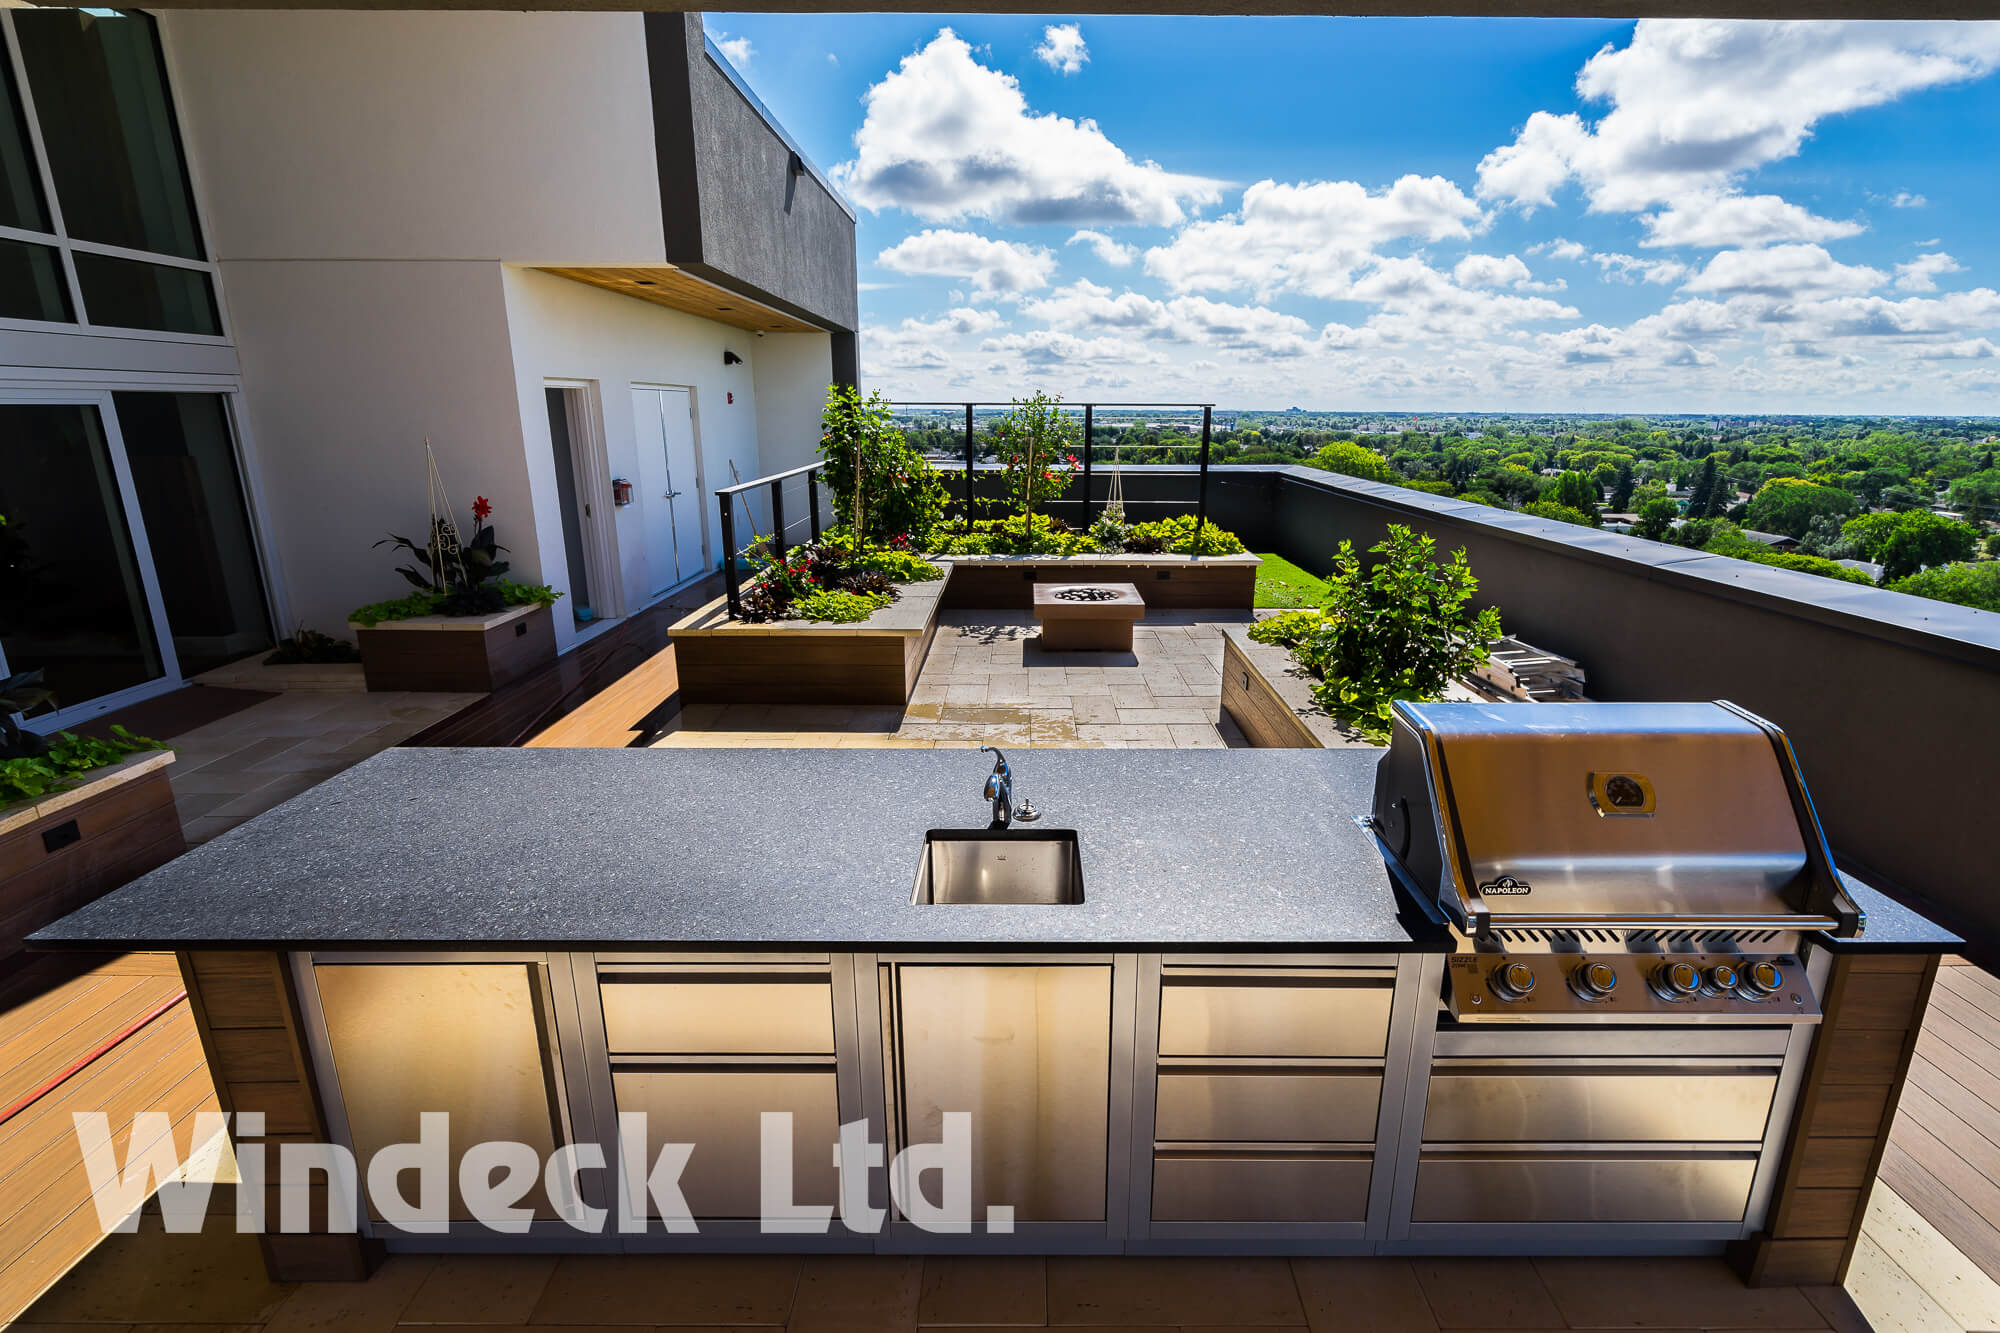 Urban Outdoor Living  - Windeck Ltd. - Composite Decking Winnipeg, Manitoba